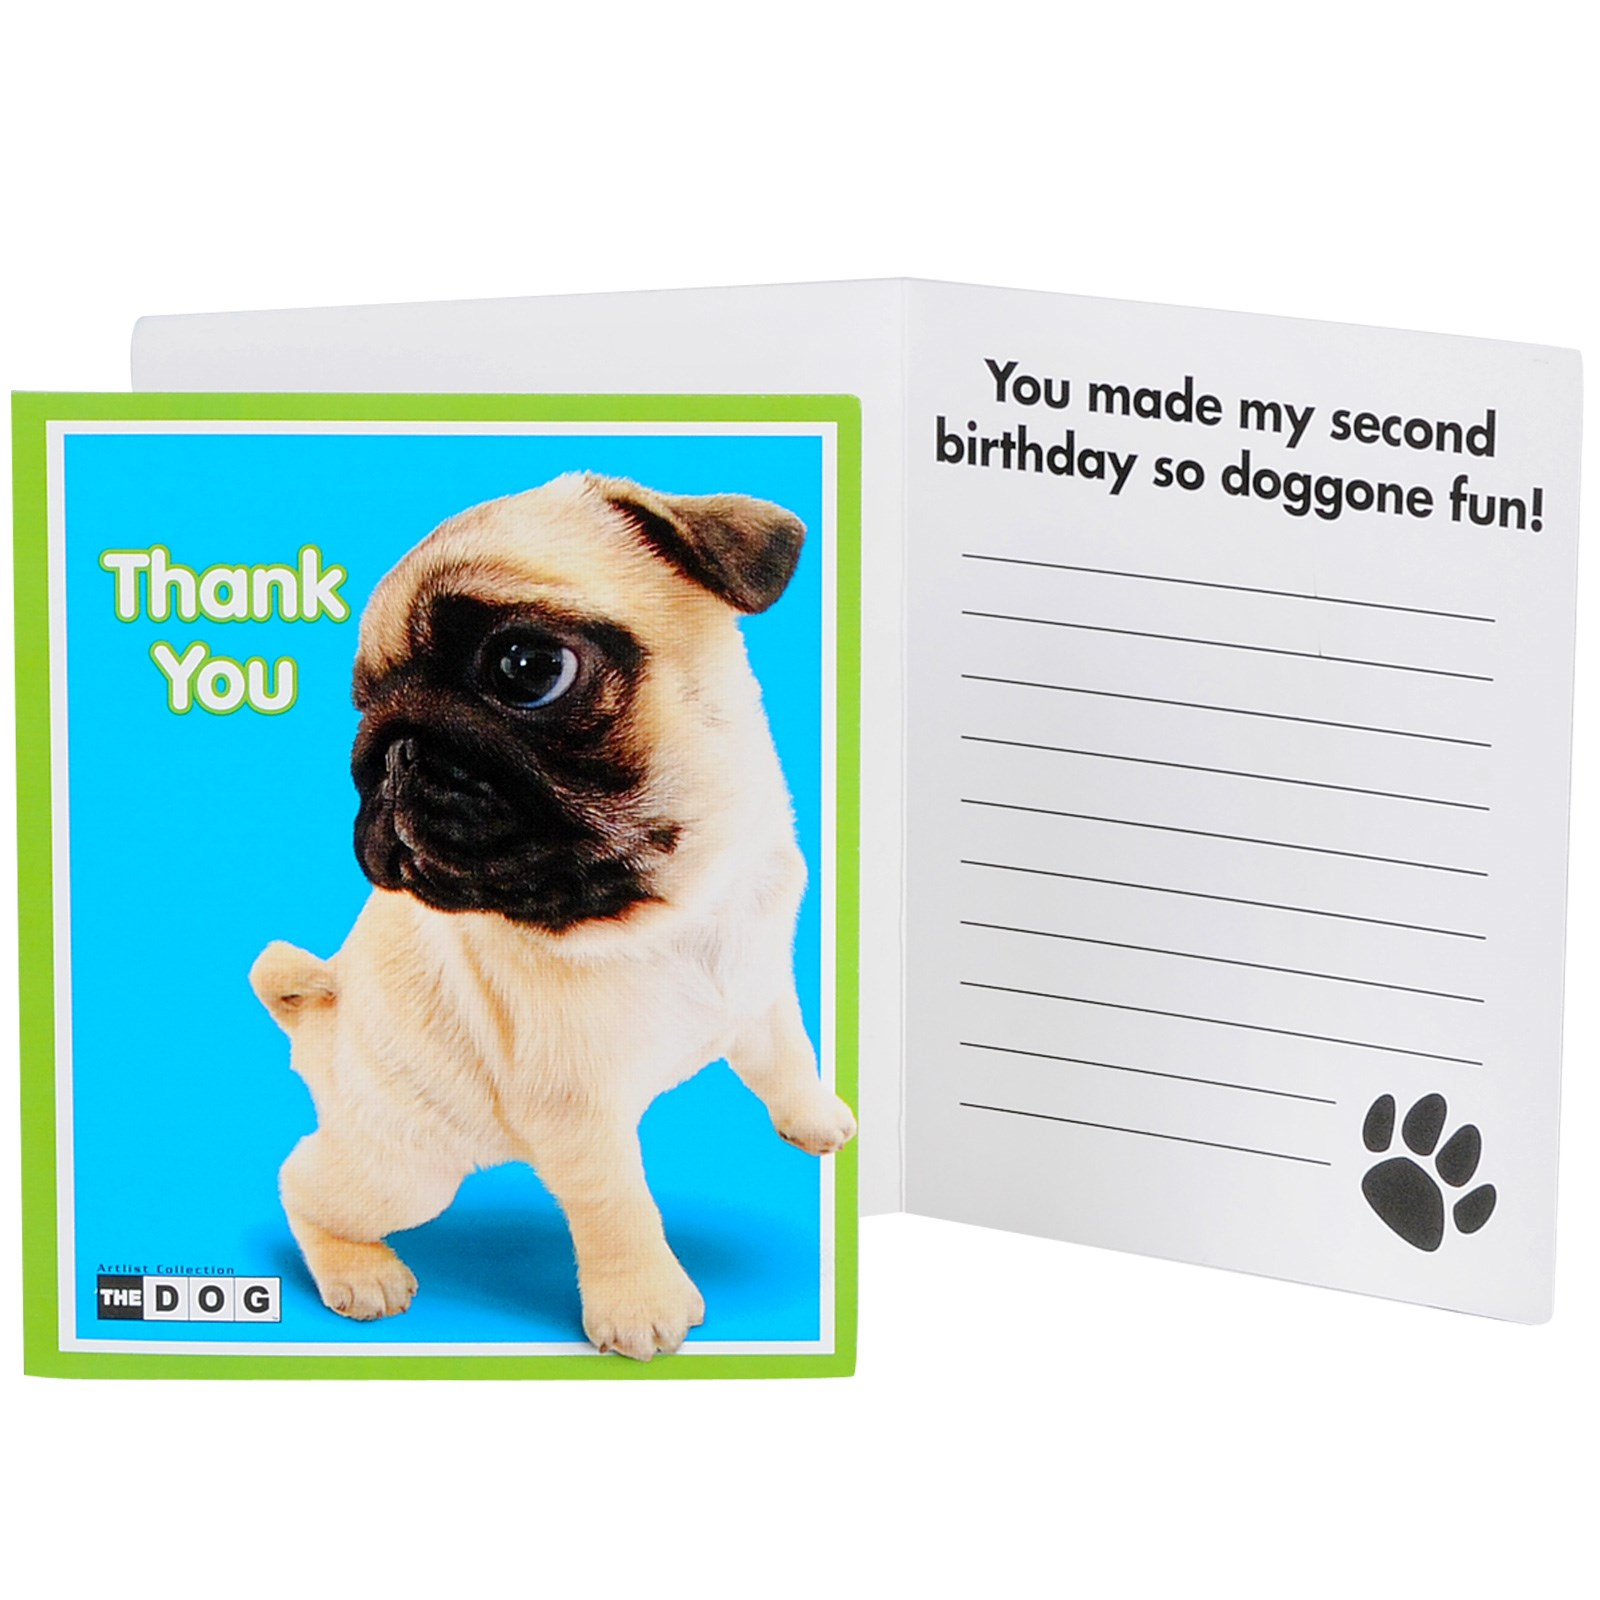 THE DOG 2nd Birthday Thank You Notes